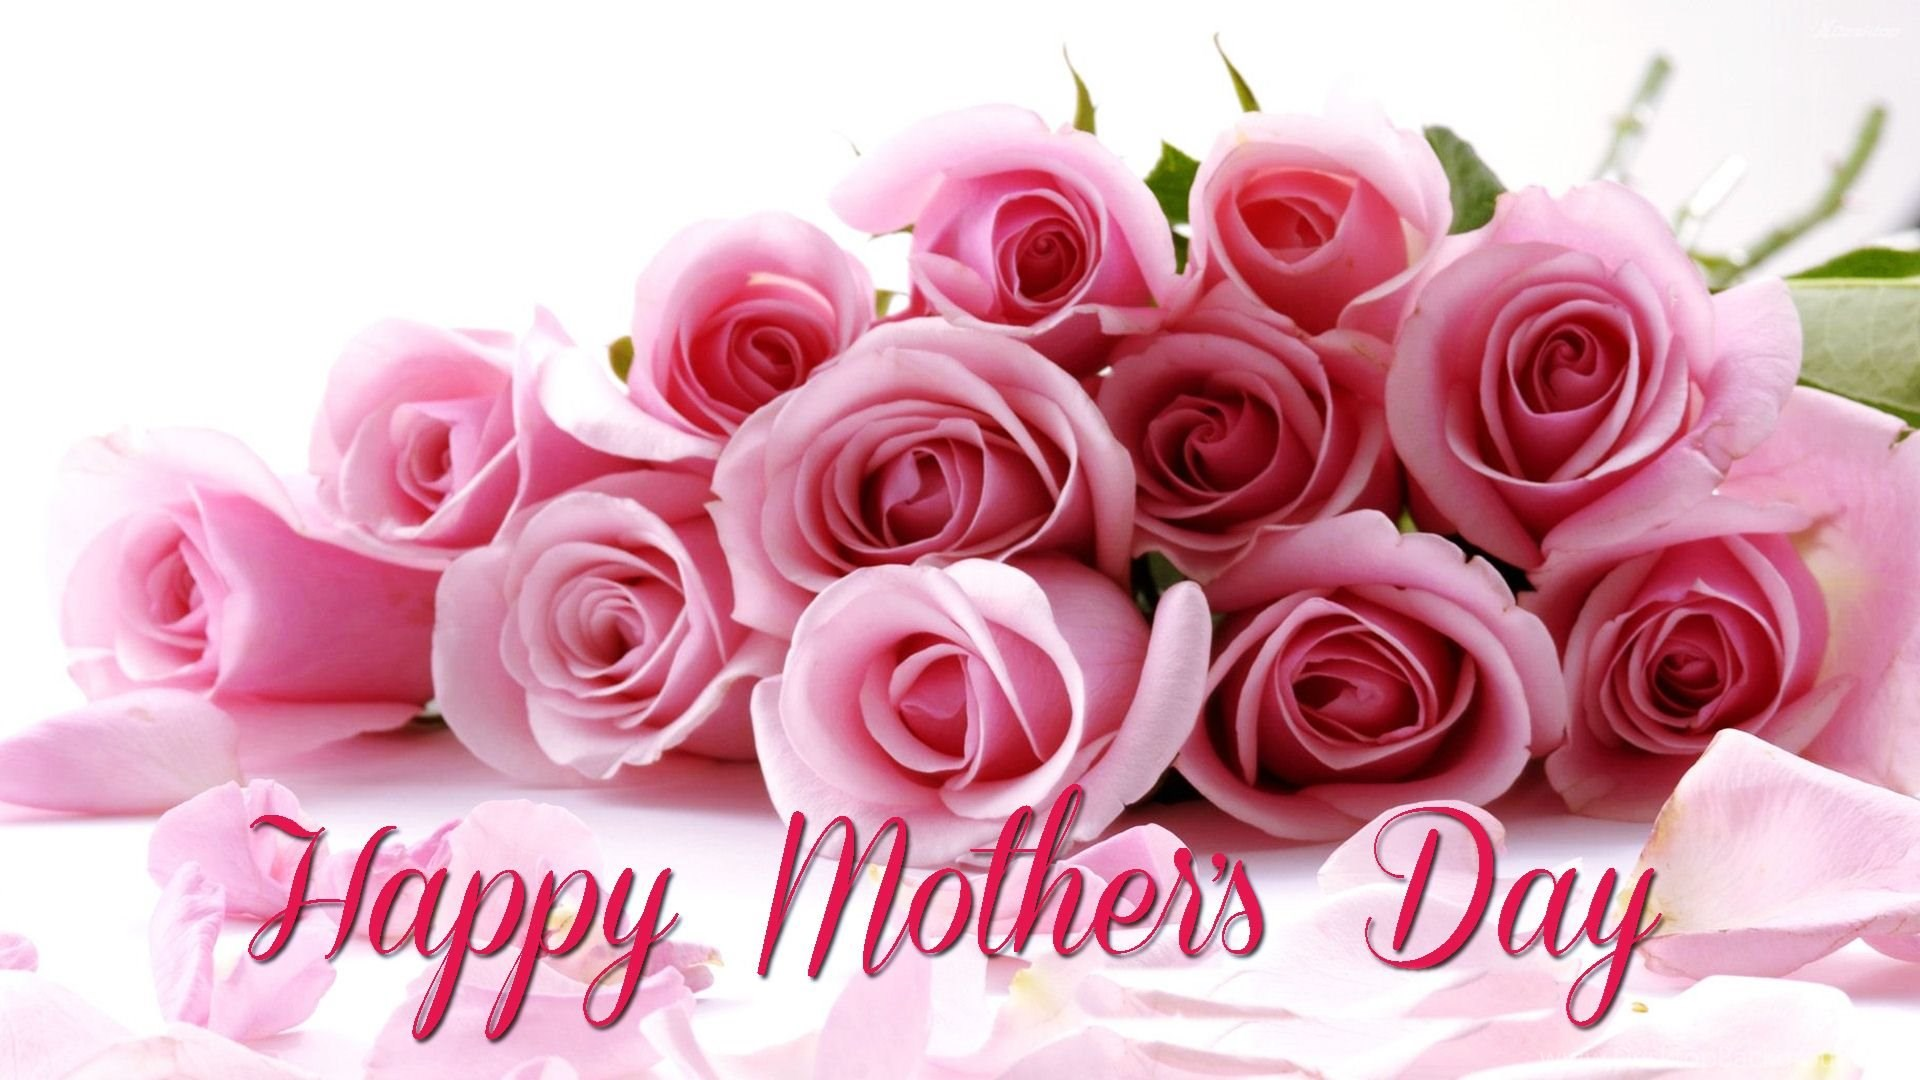 10 Happy Mothers Day Quotes Messages Wishes Greetings Saying Desktop